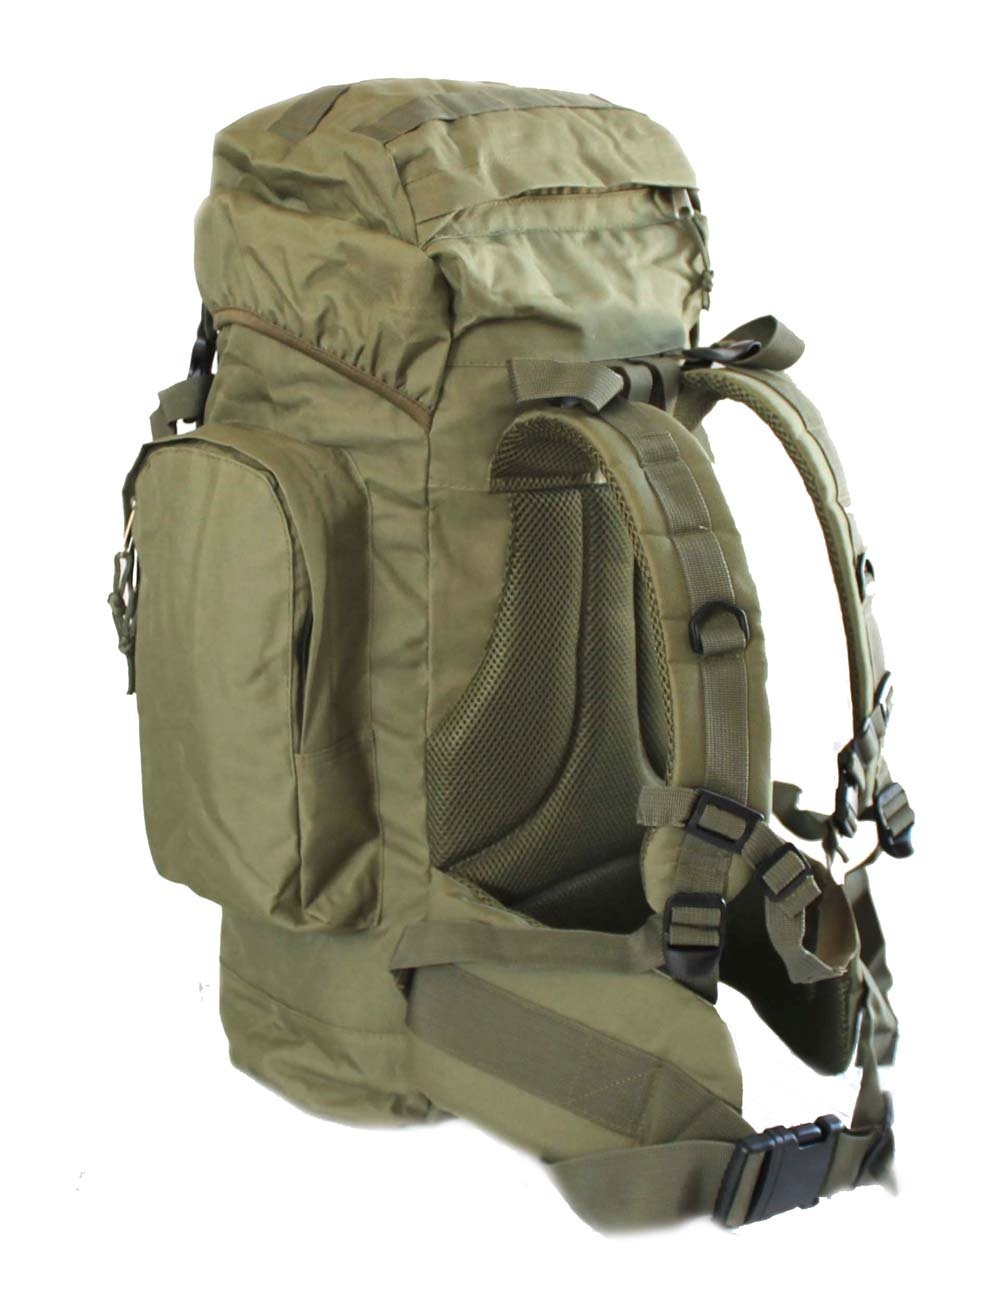 Amazon.com : OD Green 45L Rio Grande Hiking Military Style ...